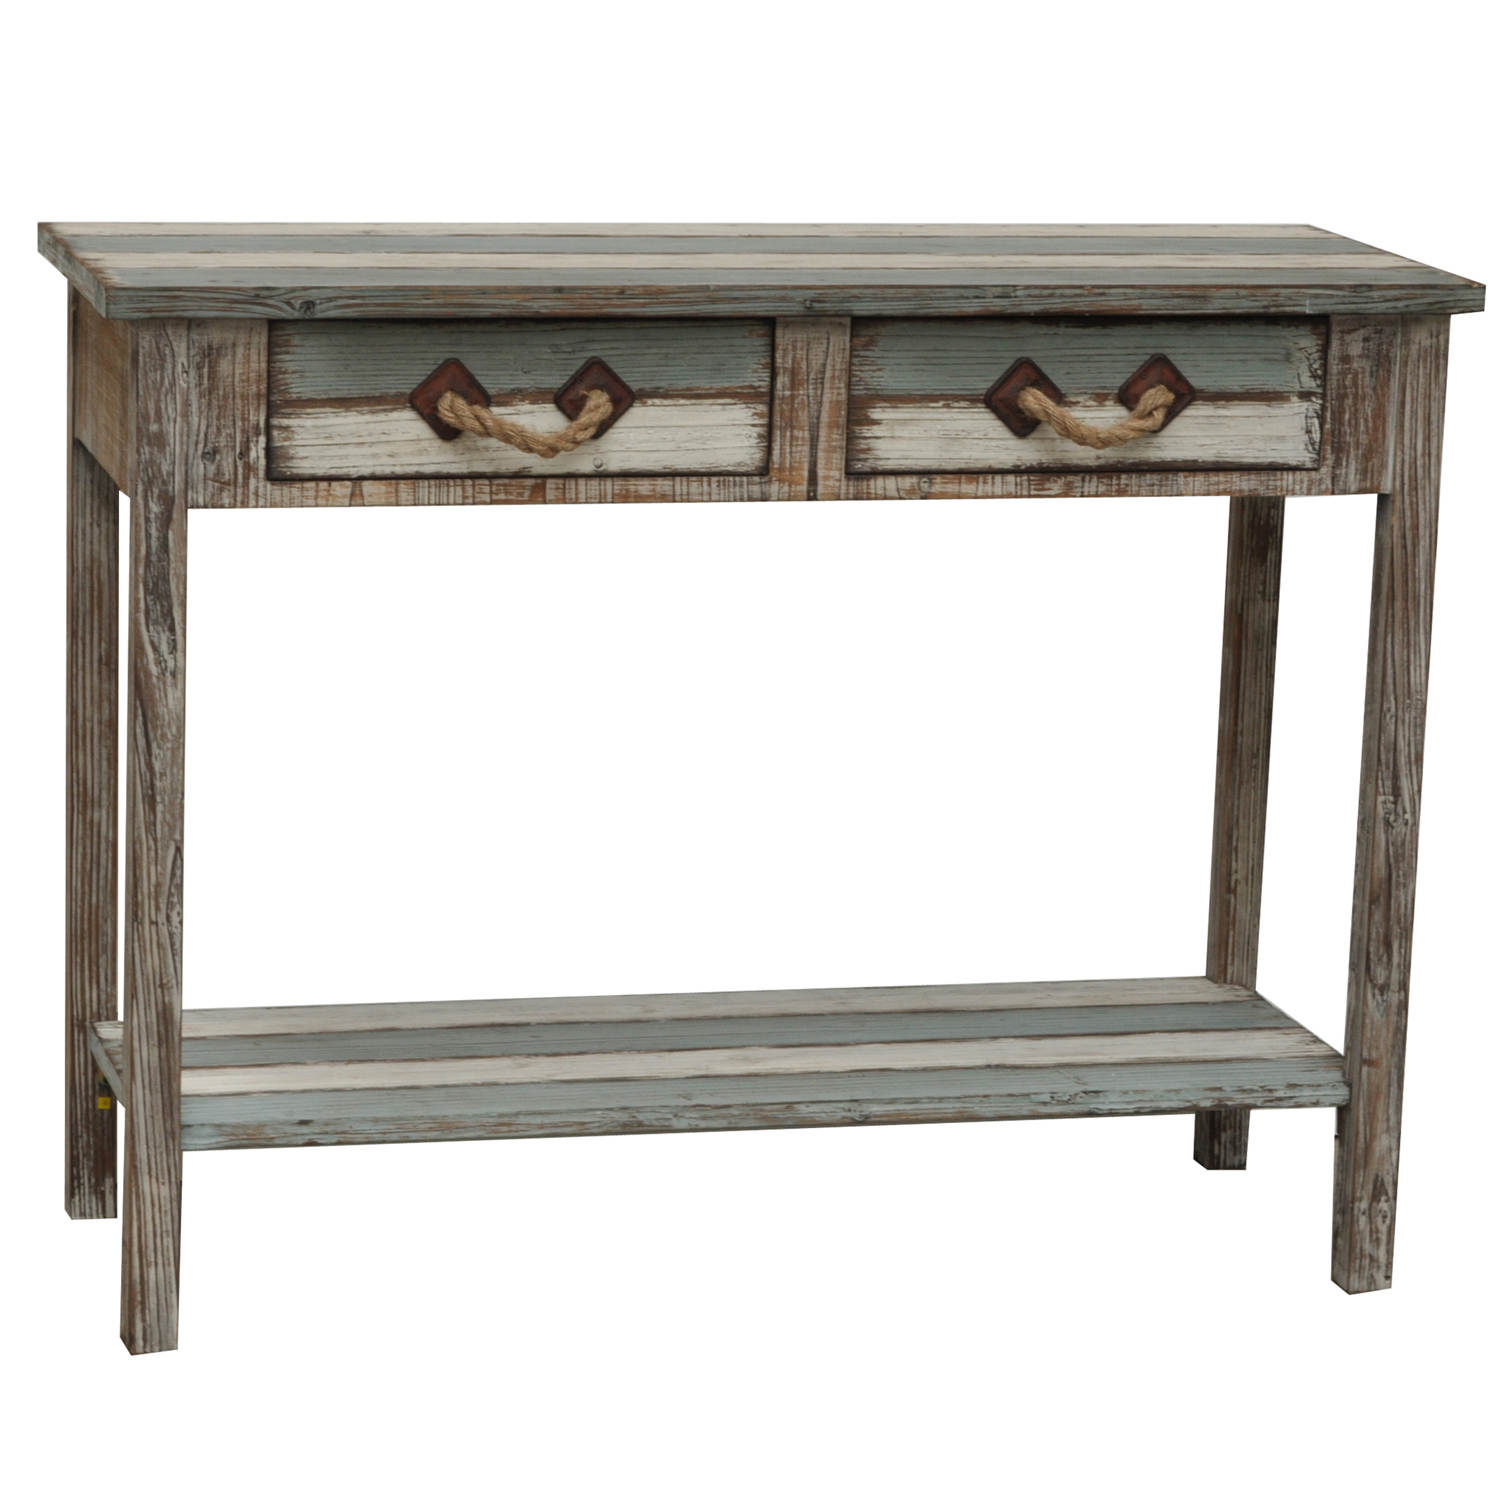 Crestview Collection Nantucket Weathered Console Table on wakefield furniture collection, portsmouth furniture collection, everett furniture collection, bronx furniture collection, savannah furniture collection, aquinnah furniture collection, pulaski nantucket collection, watch hill furniture collection, country cottage furniture collection, nantucket chairs, wynwood furniture collection, lawrence furniture collection, amesbury furniture collection, westford furniture collection, orange furniture collection, foxwood furniture collection, nantucket bedding collection, brunswick furniture collection, somerset furniture collection, mystic furniture collection,